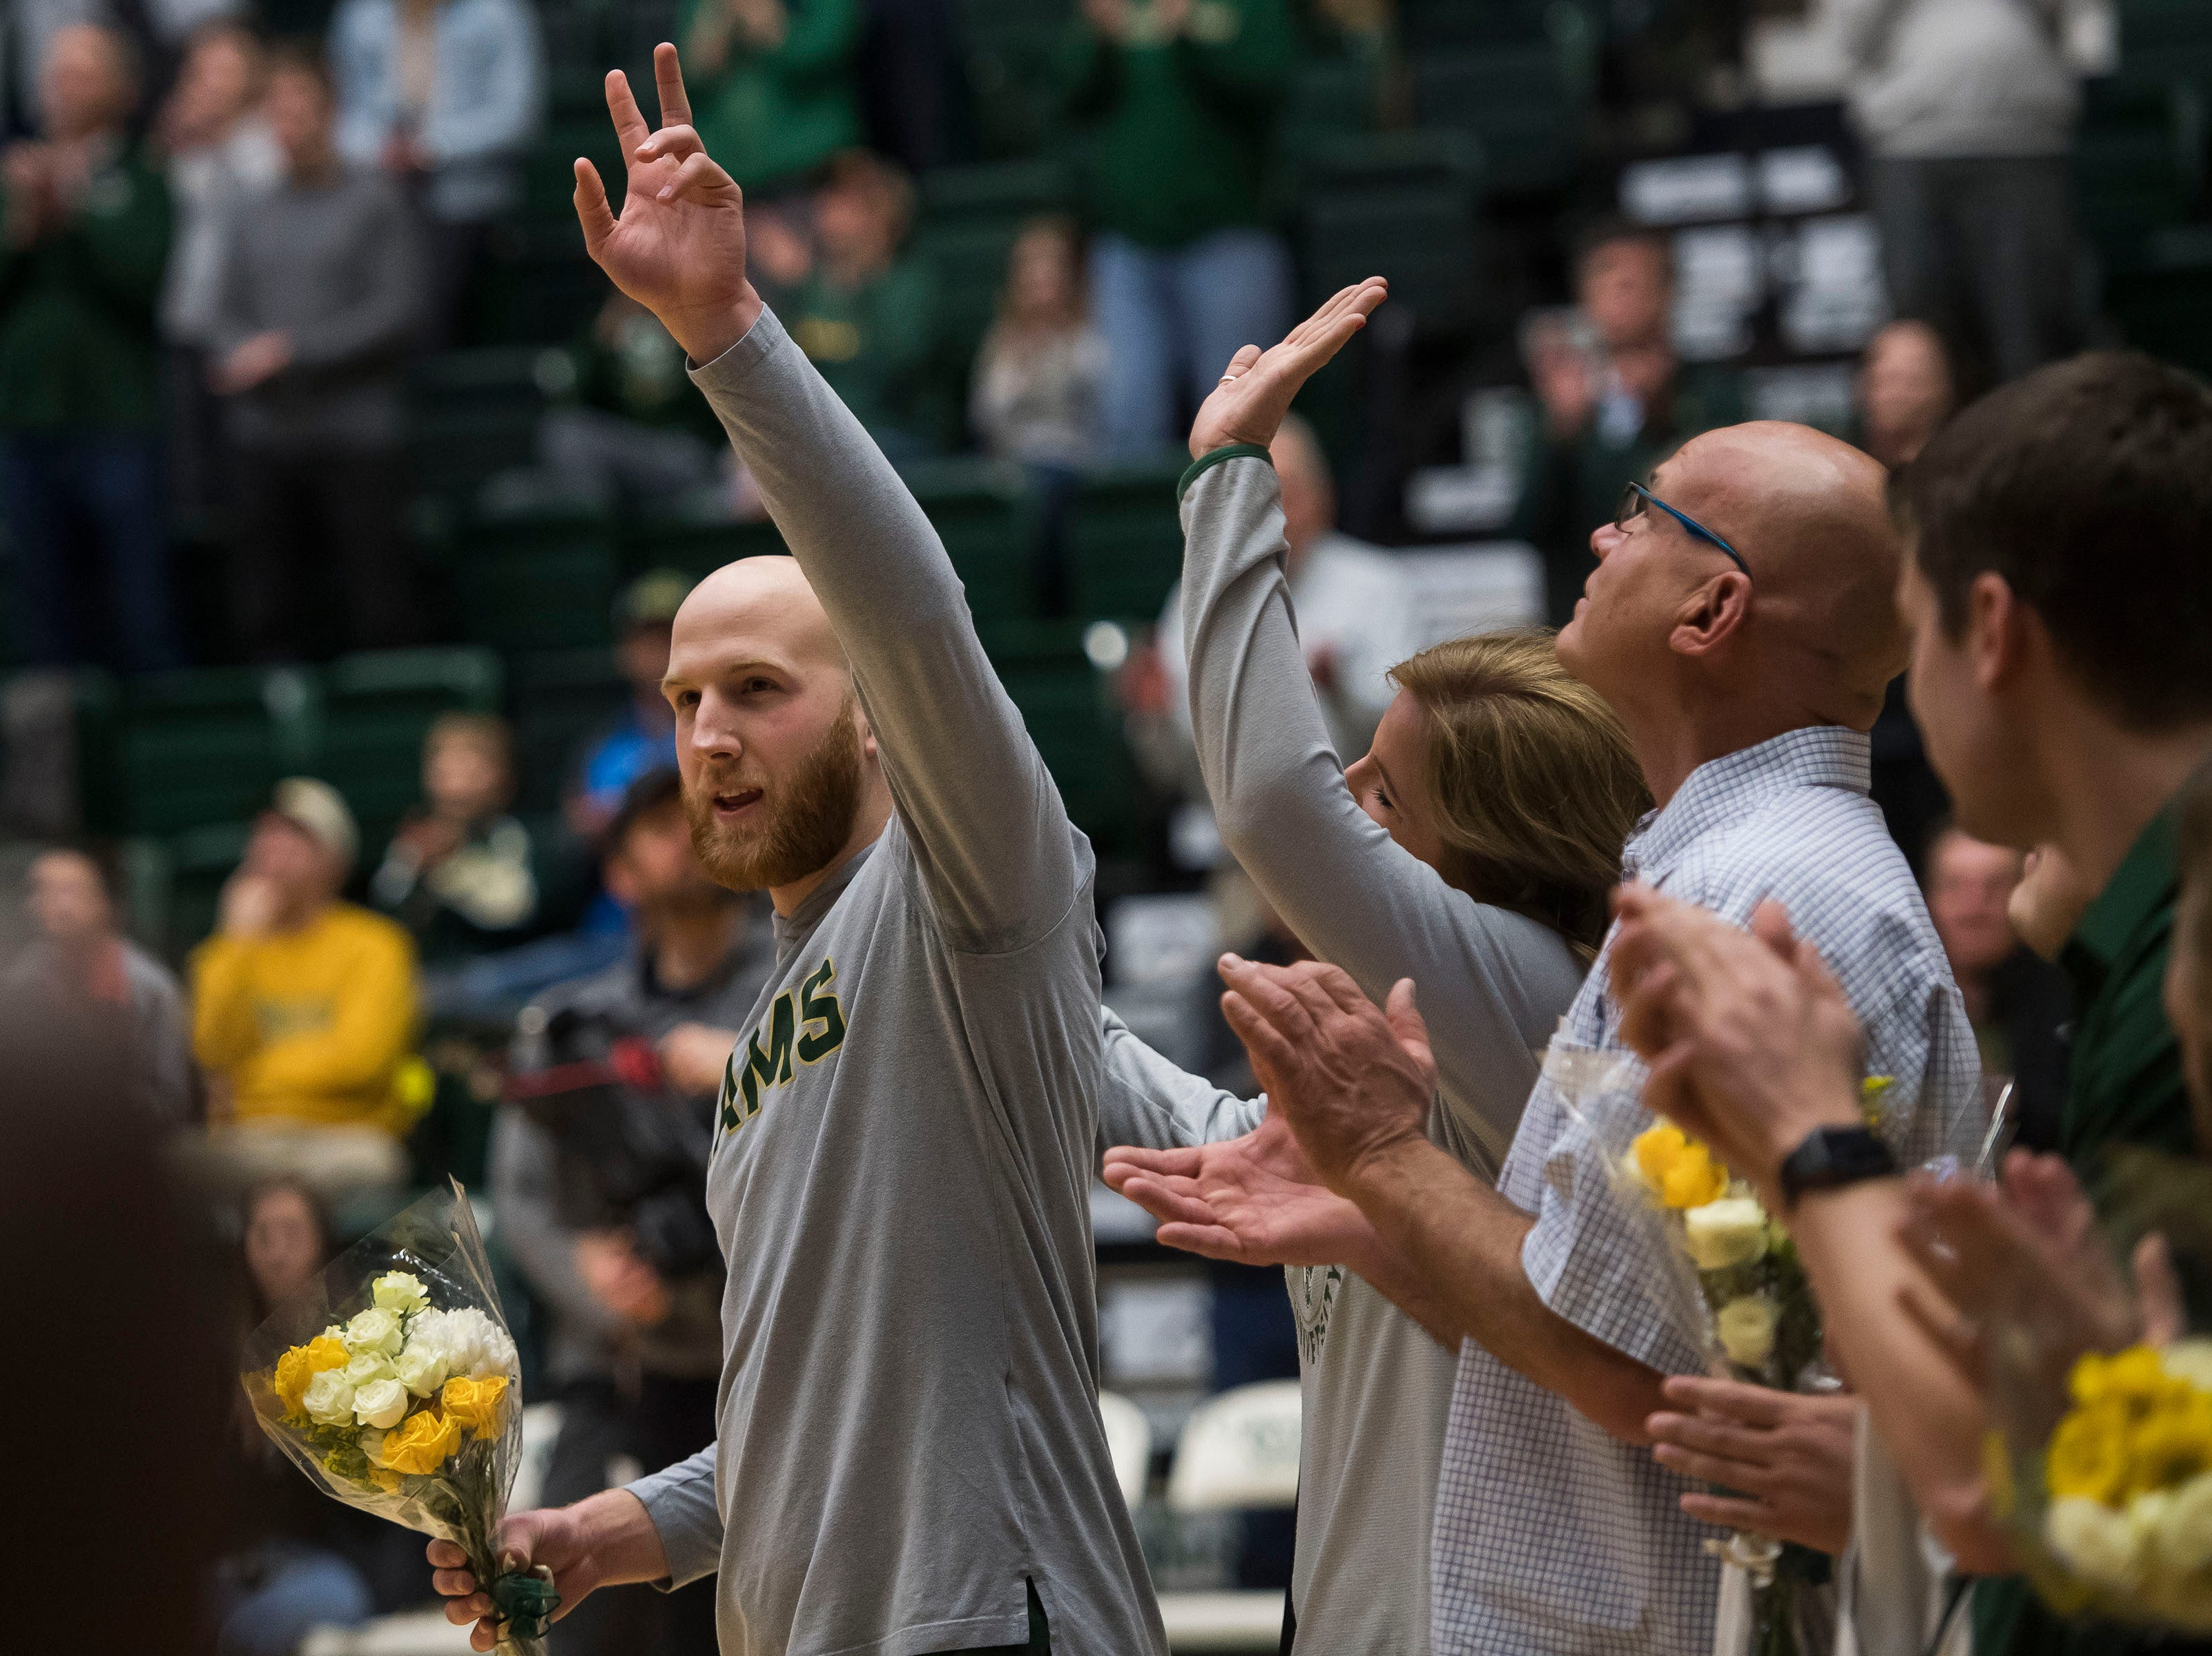 Colorado State University senior guard Robbie Berwick (14) is honored before a game against University of Nevada Las Vegas on Saturday, March 9, 2019, at Moby Arena in Fort Collins, Colo.